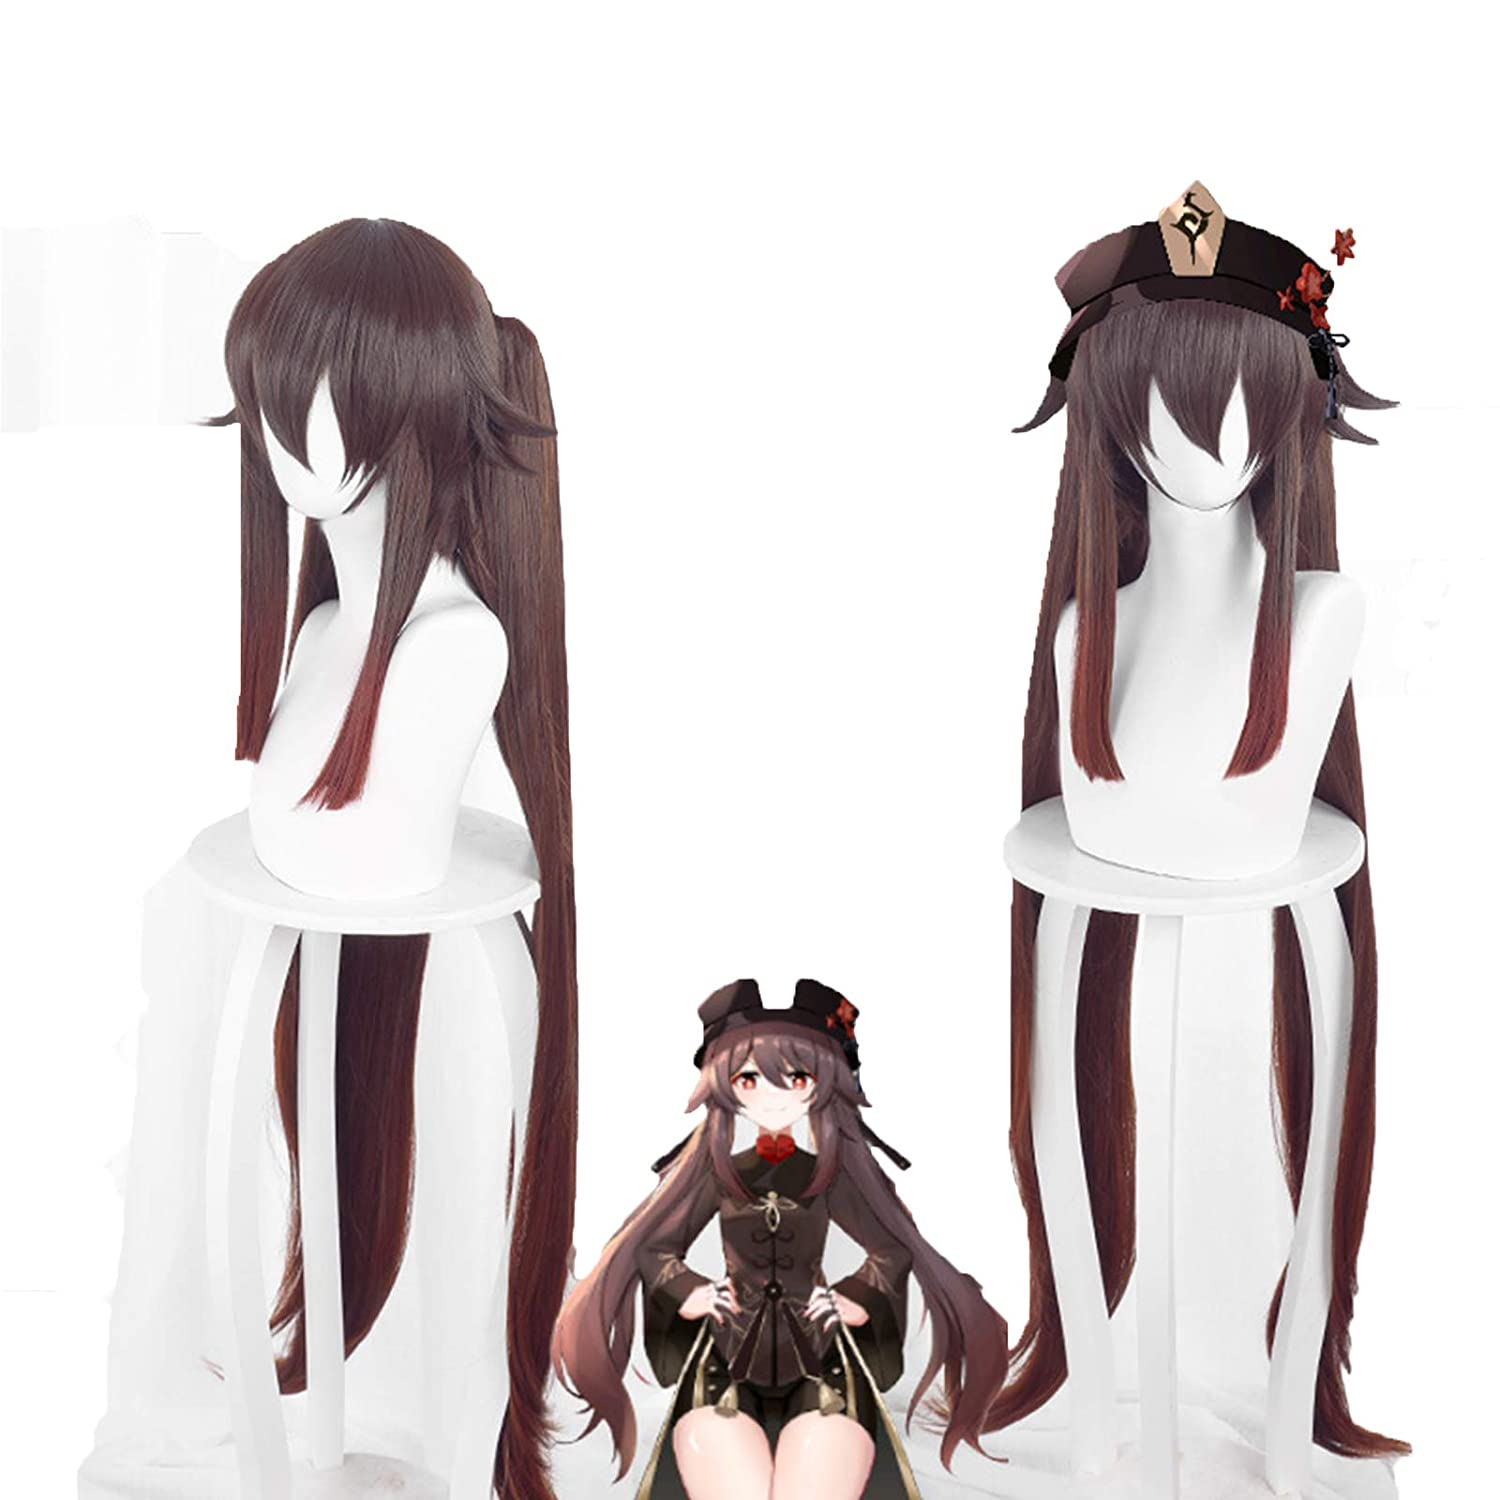 Heydoki Genshin Impact Wig Department store Anime Project sold out Cosplay Hu Tao Wigs Red